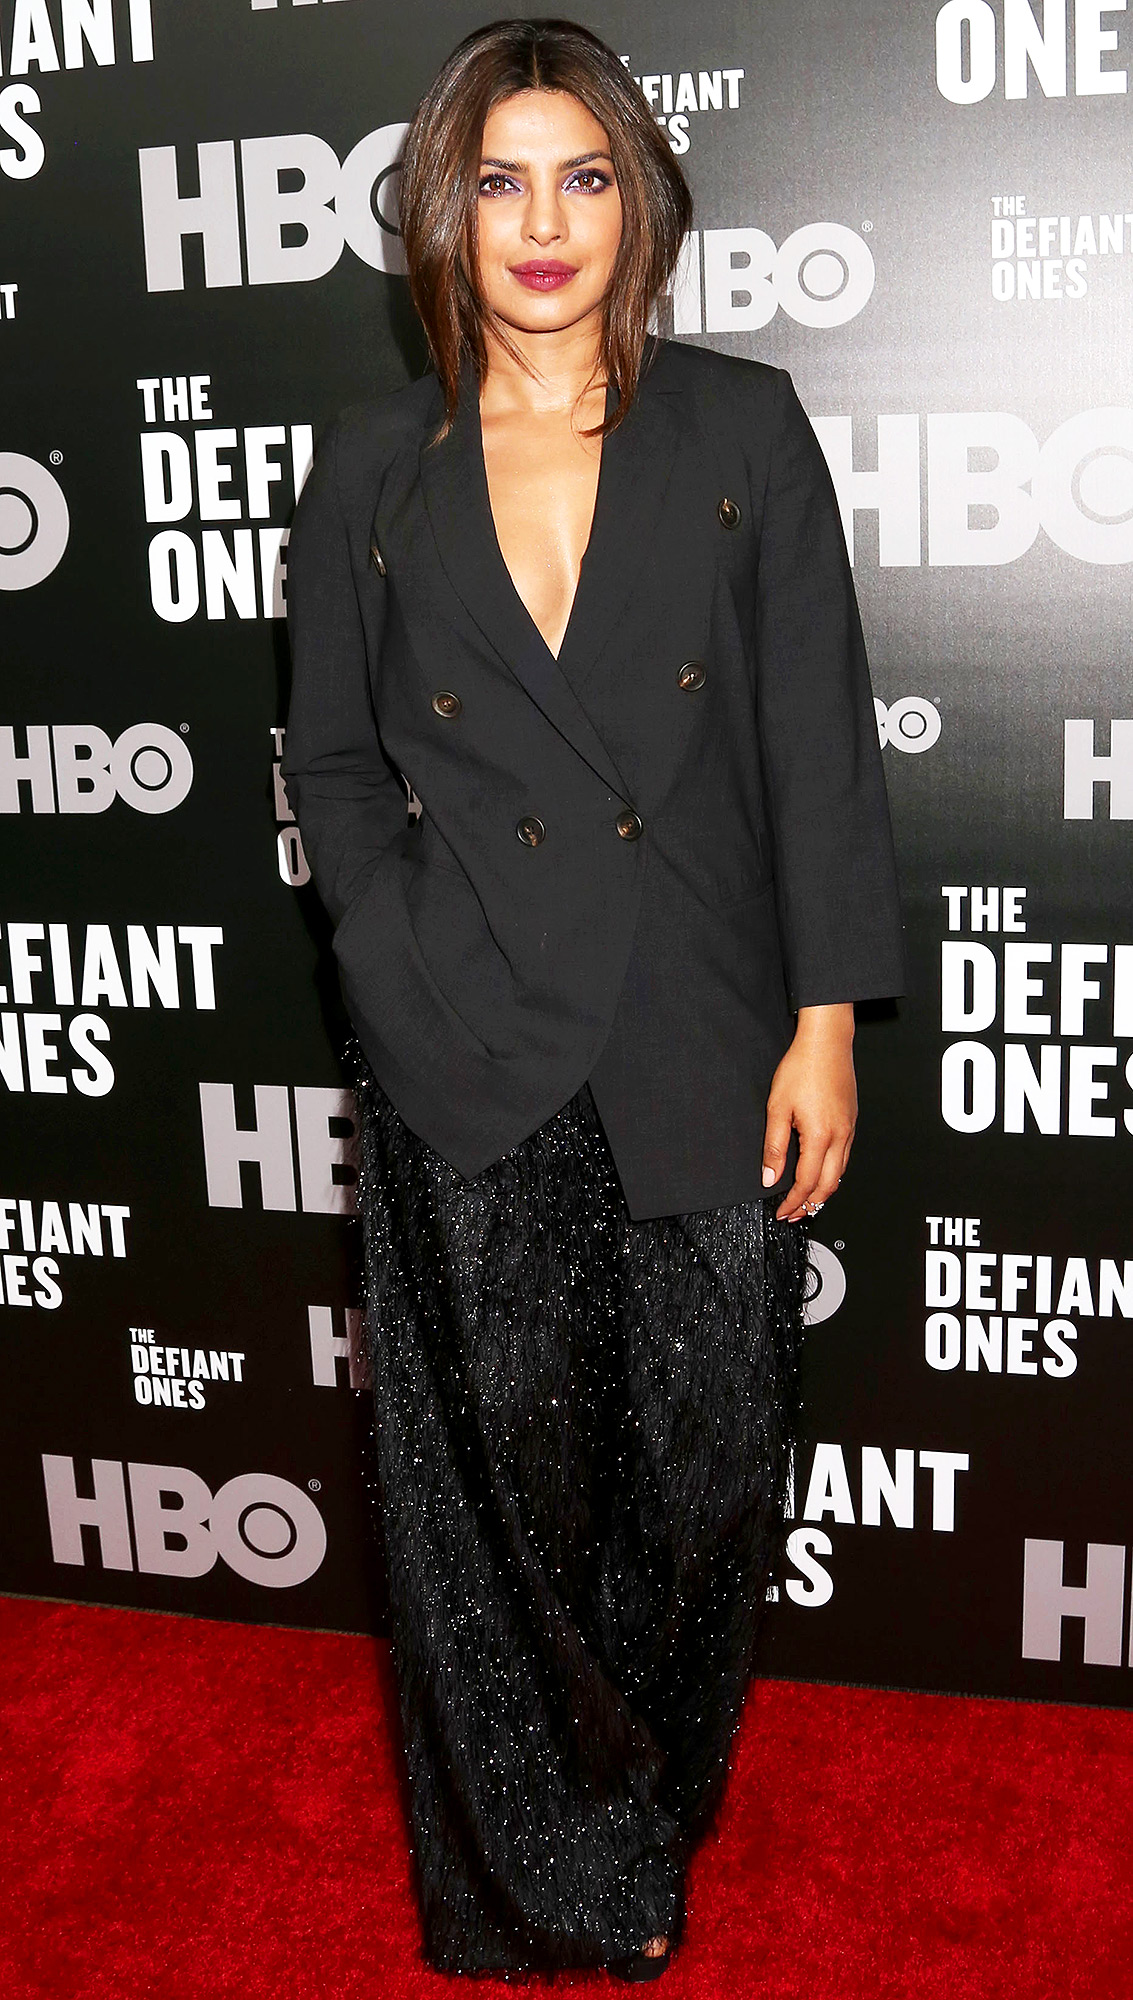 Stars attend the premiere of 'The Defiant Ones' in New York